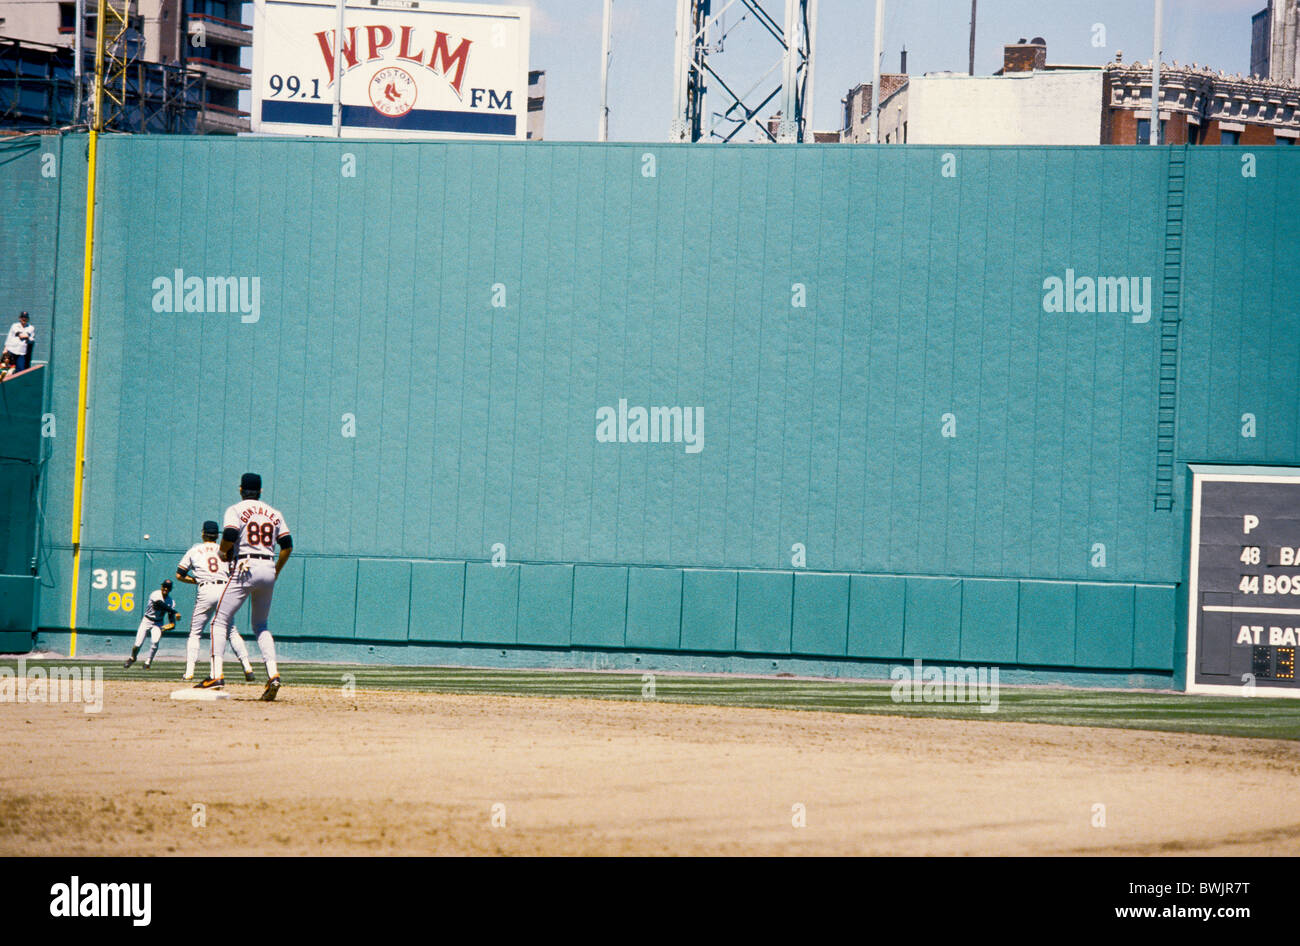 Green Monster at Fenway Park home of the MLB Boston Red Sox. - Stock Image